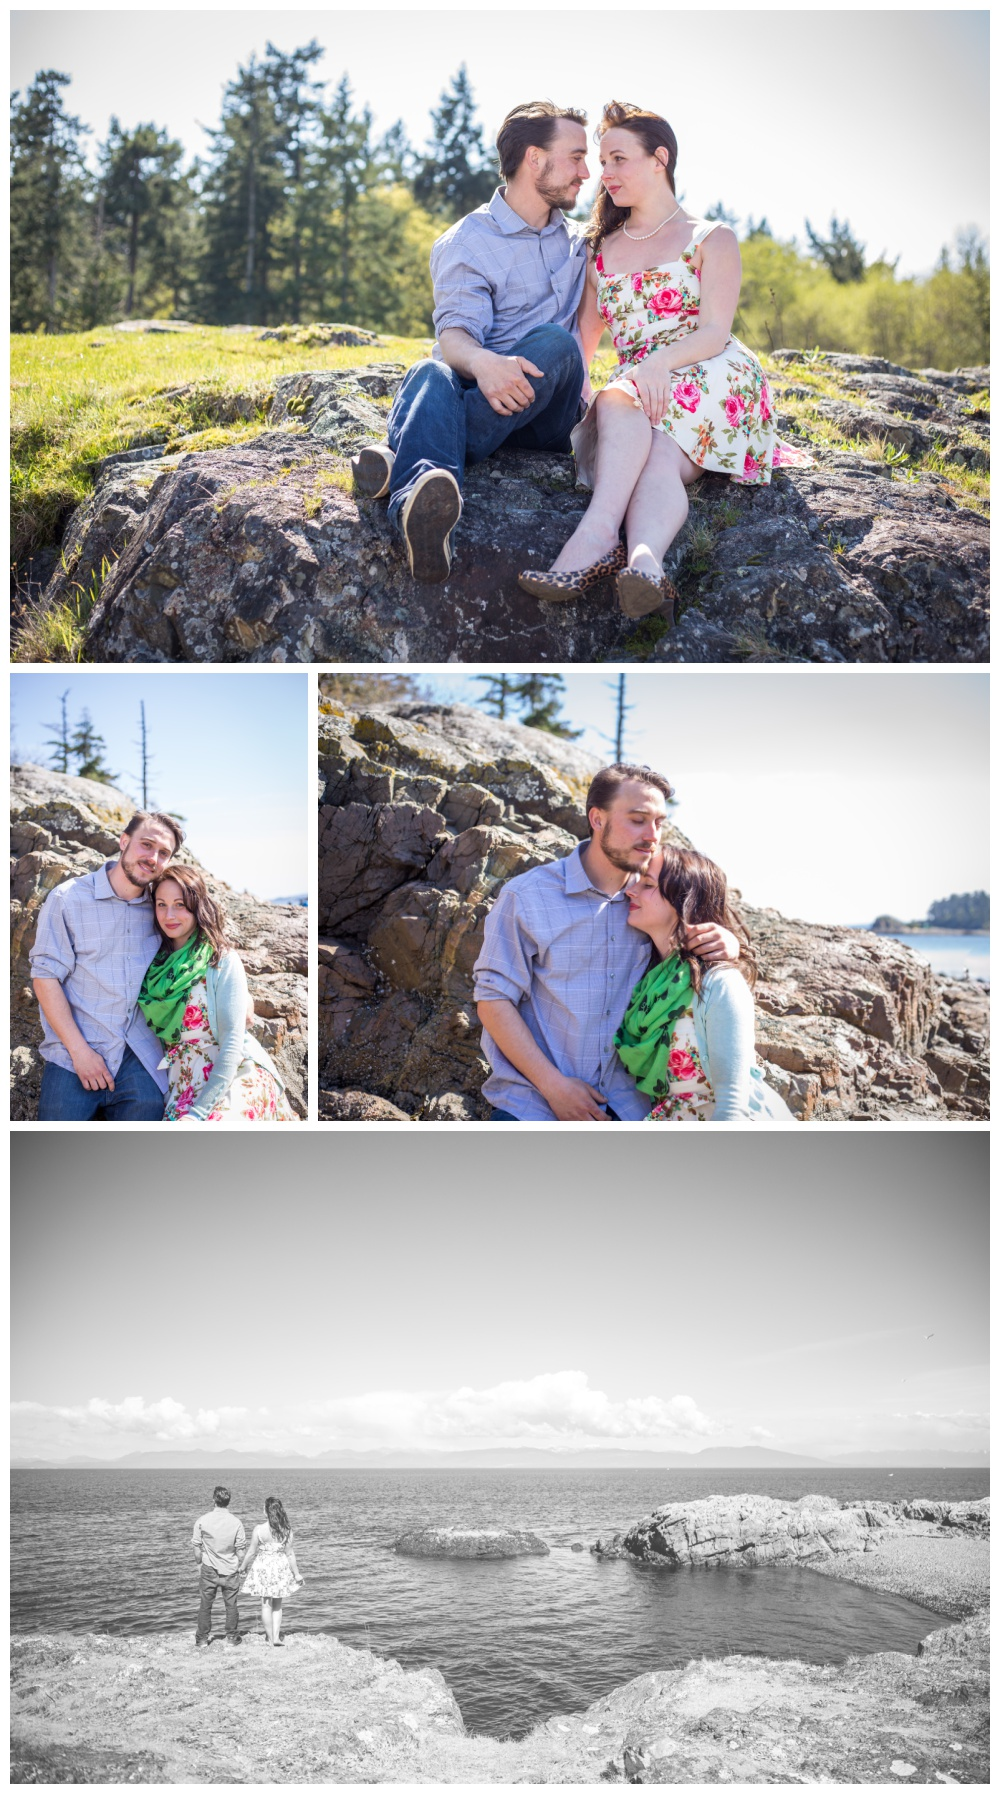 Playful Engagement Session at Neck Point Park